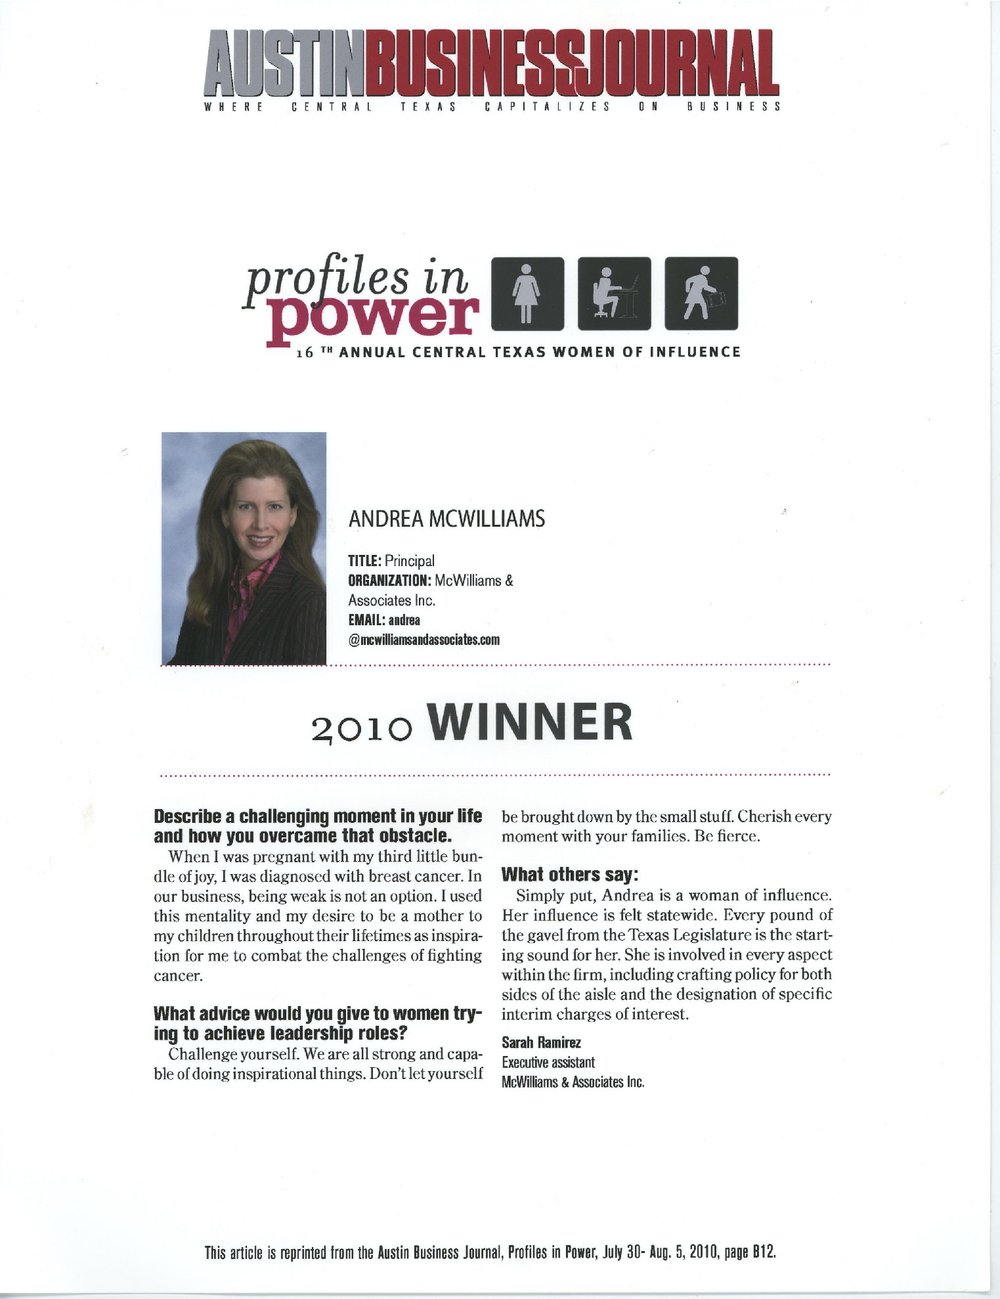 Profiles in Power: 2010 Winner